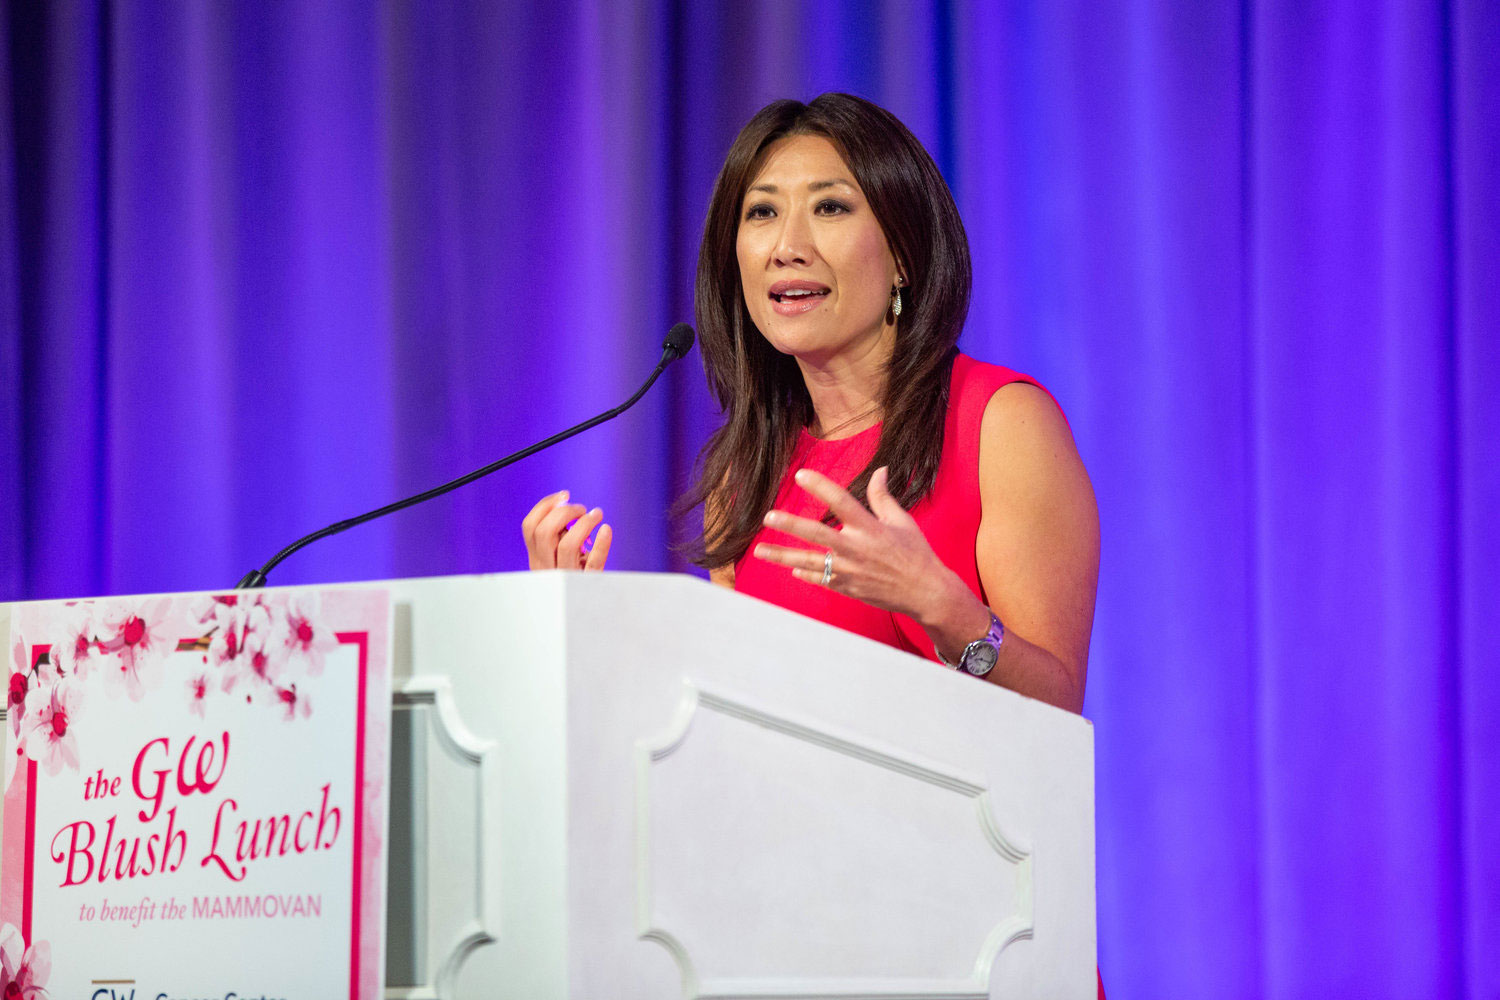 Speaker at Blush Lunch